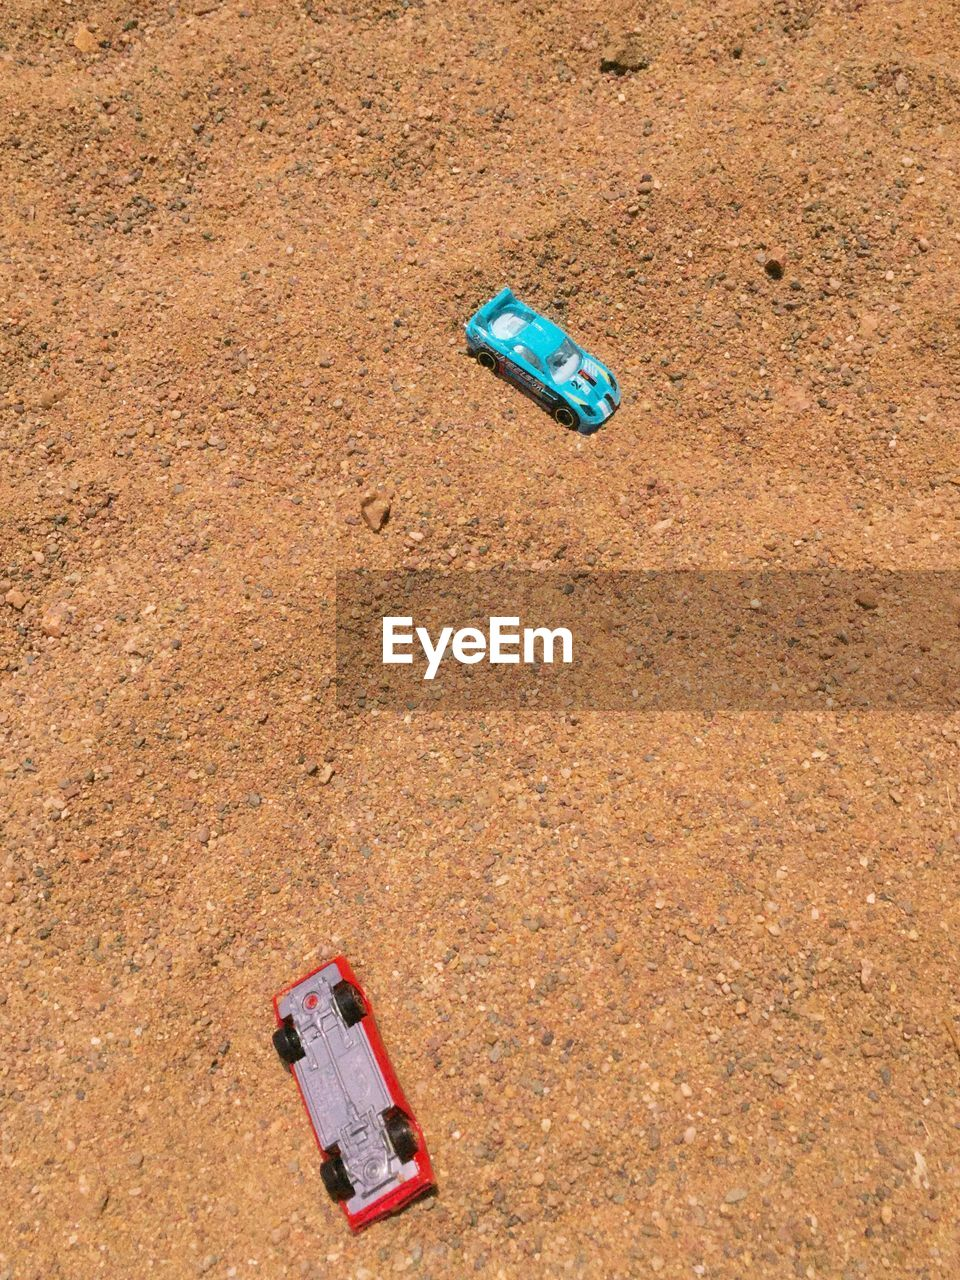 land, high angle view, container, blue, bottle, nature, sand, day, environment, no people, single object, water, beach, plastic, red, garbage, outdoors, summer, dirt, abandoned, pollution